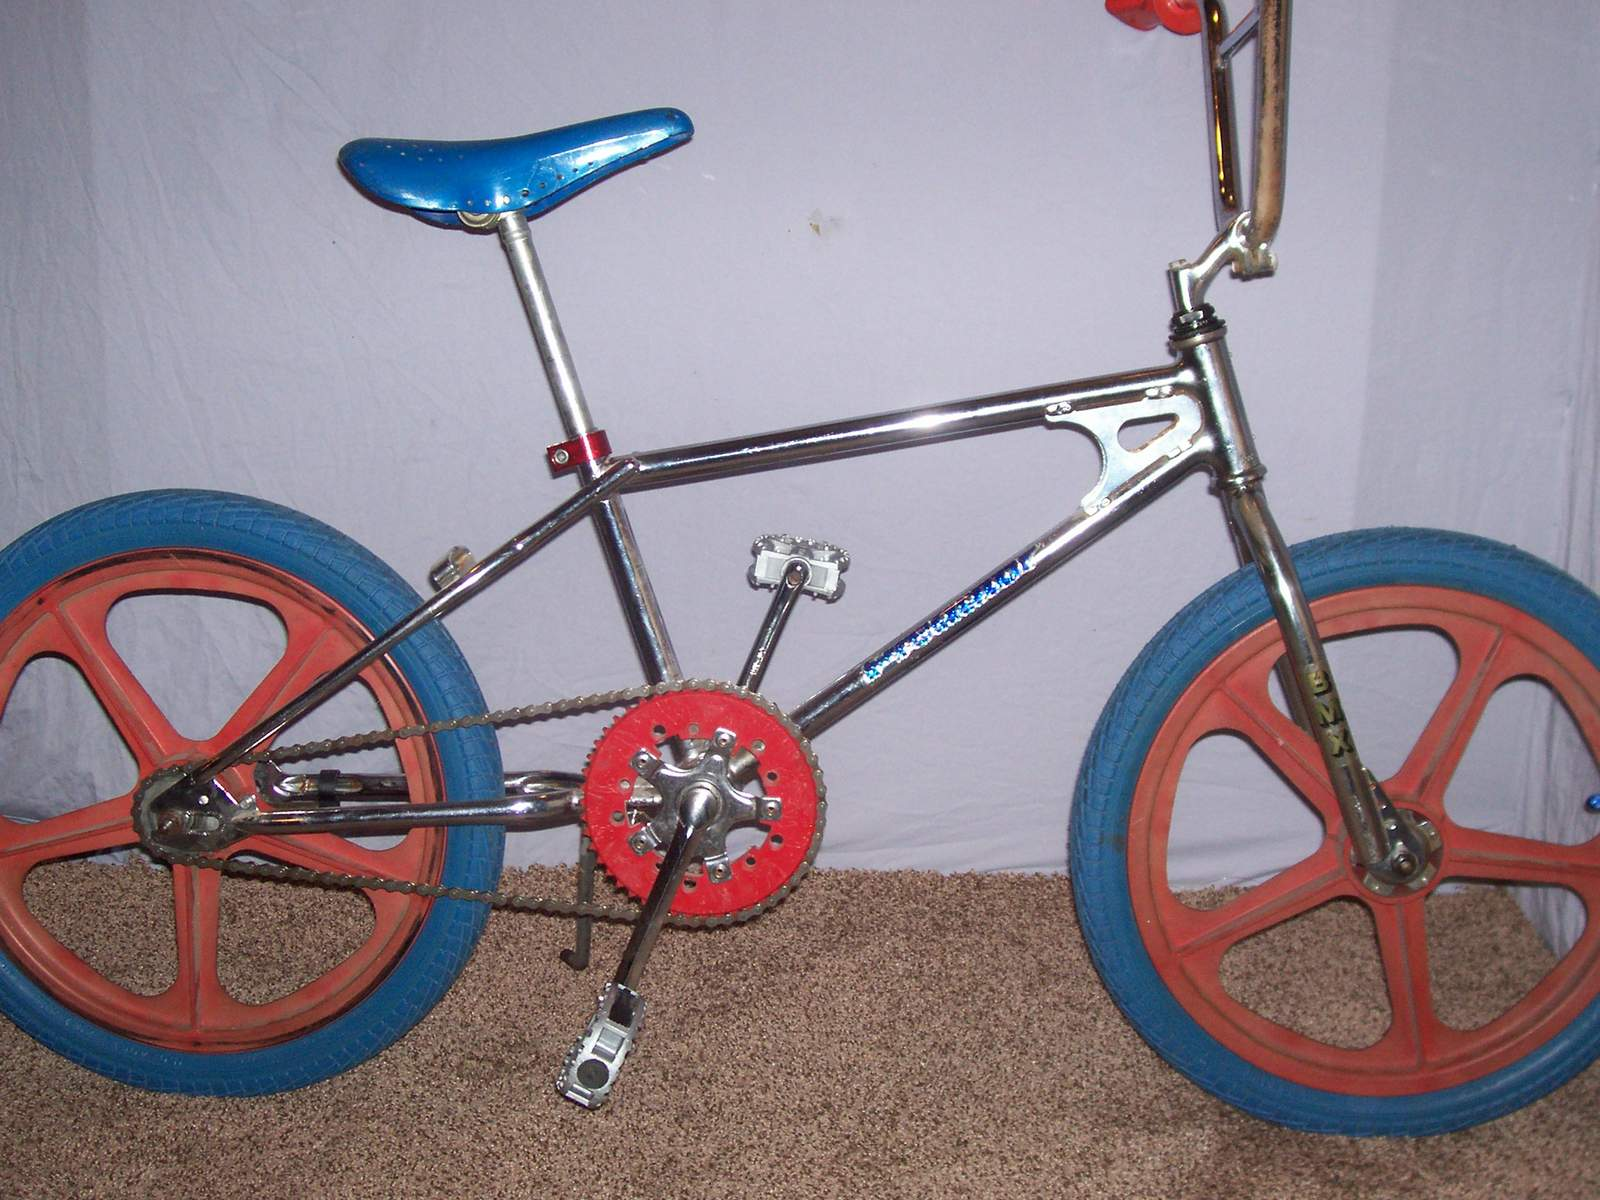 https://s3.amazonaws.com/uploads.bmxmuseum.com/user-images/61851/100_970259a538d444.jpg